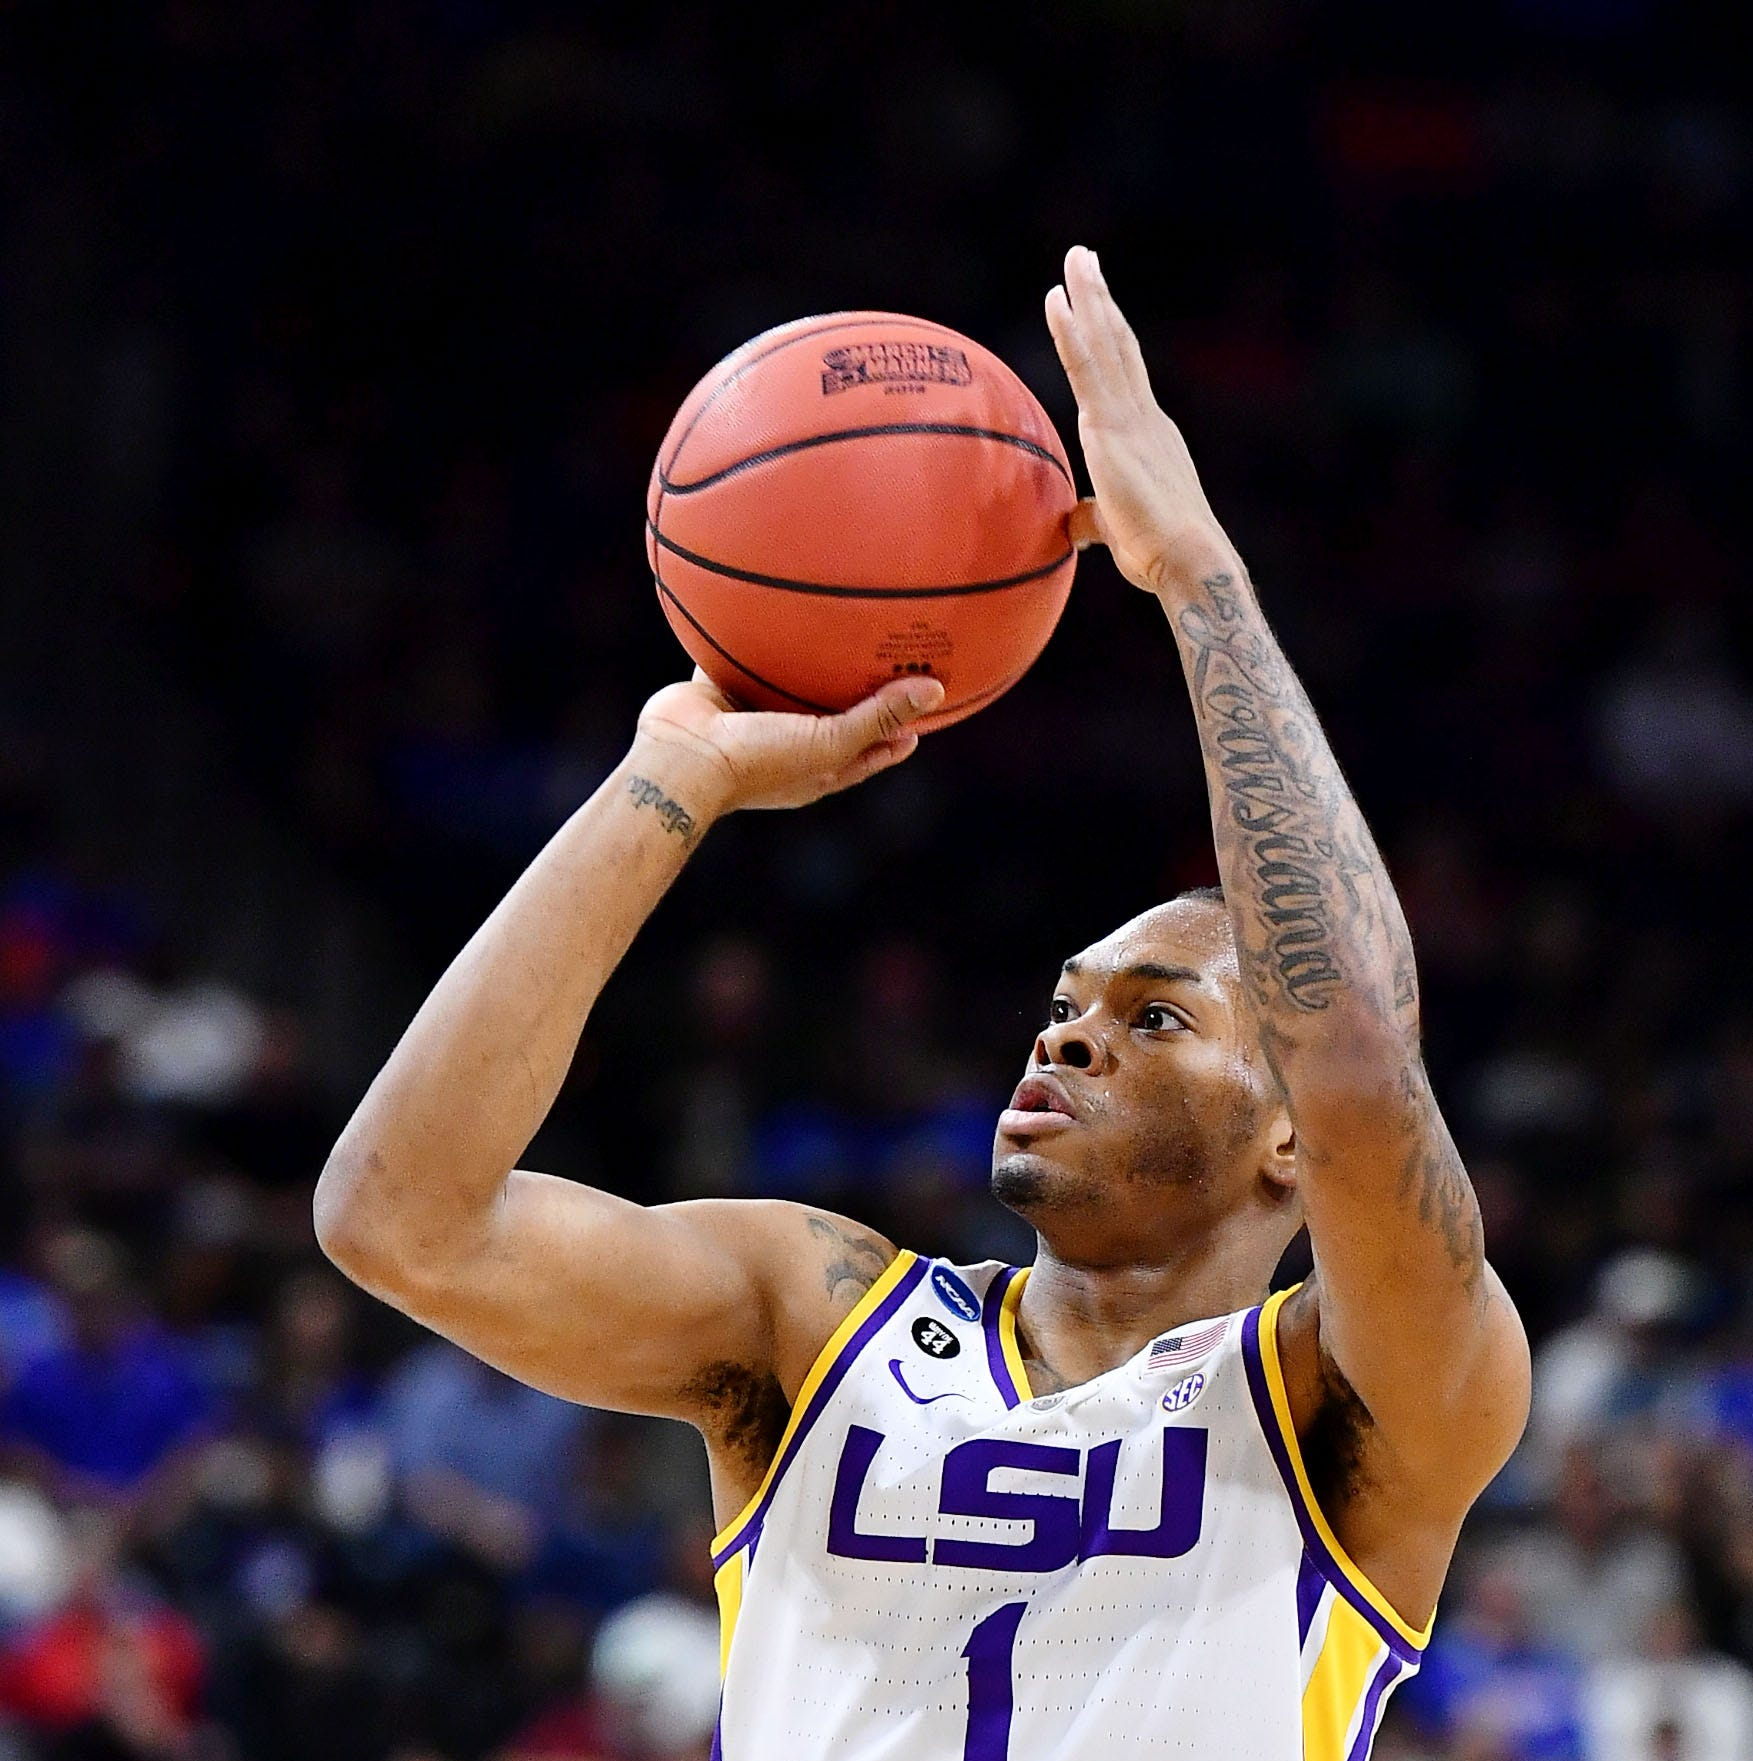 LSU Recruiting Probe Update: Third party between Wade and Smart revealed